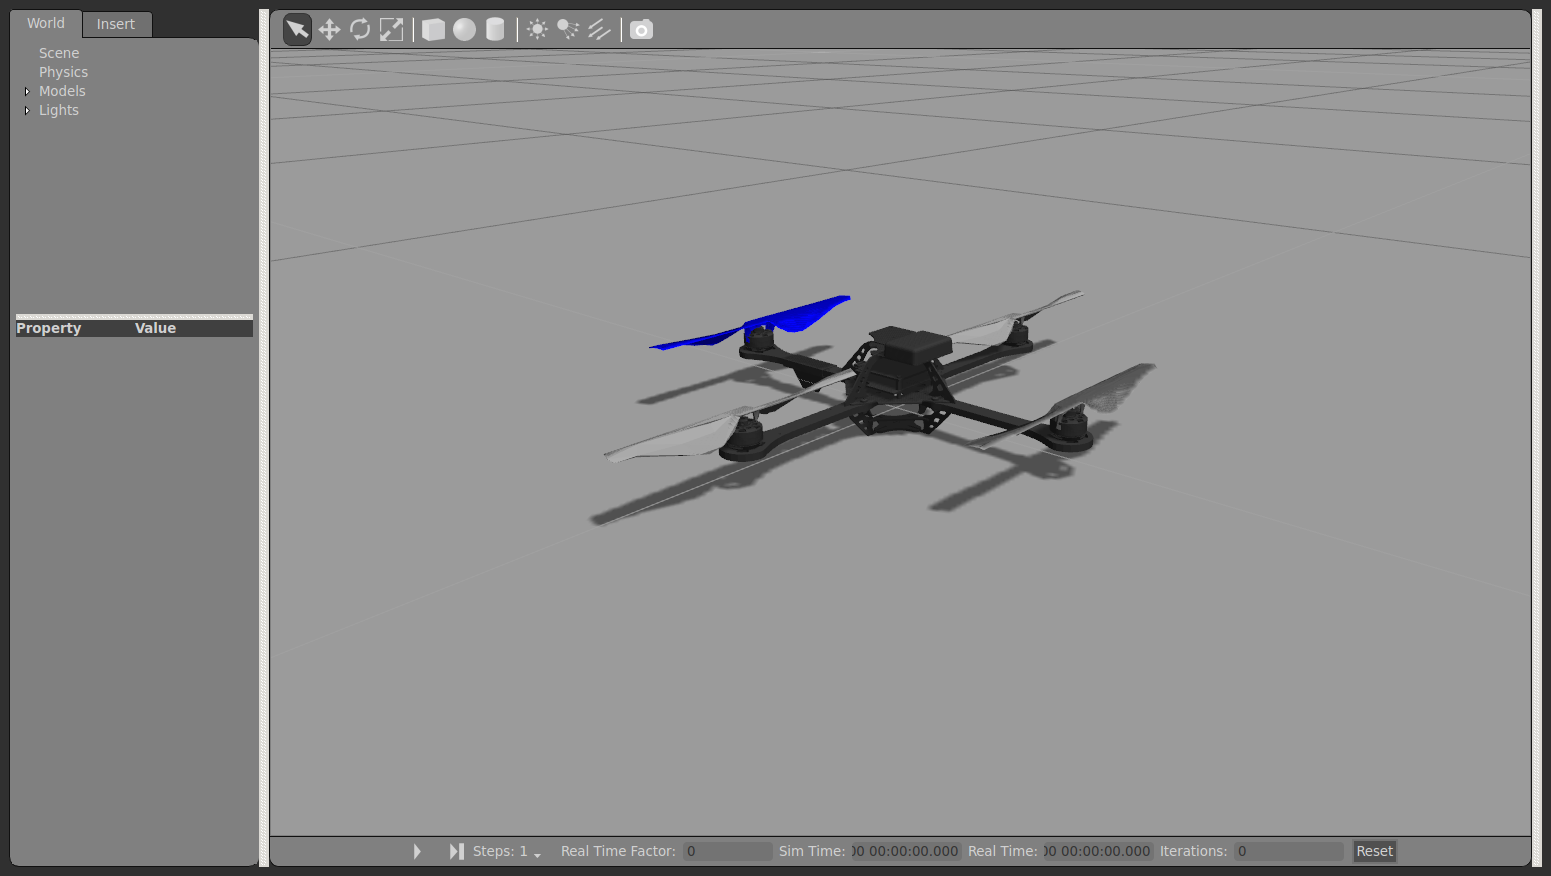 ROS Integration - Quadrotor Model Dynamics & Sensor Simulation